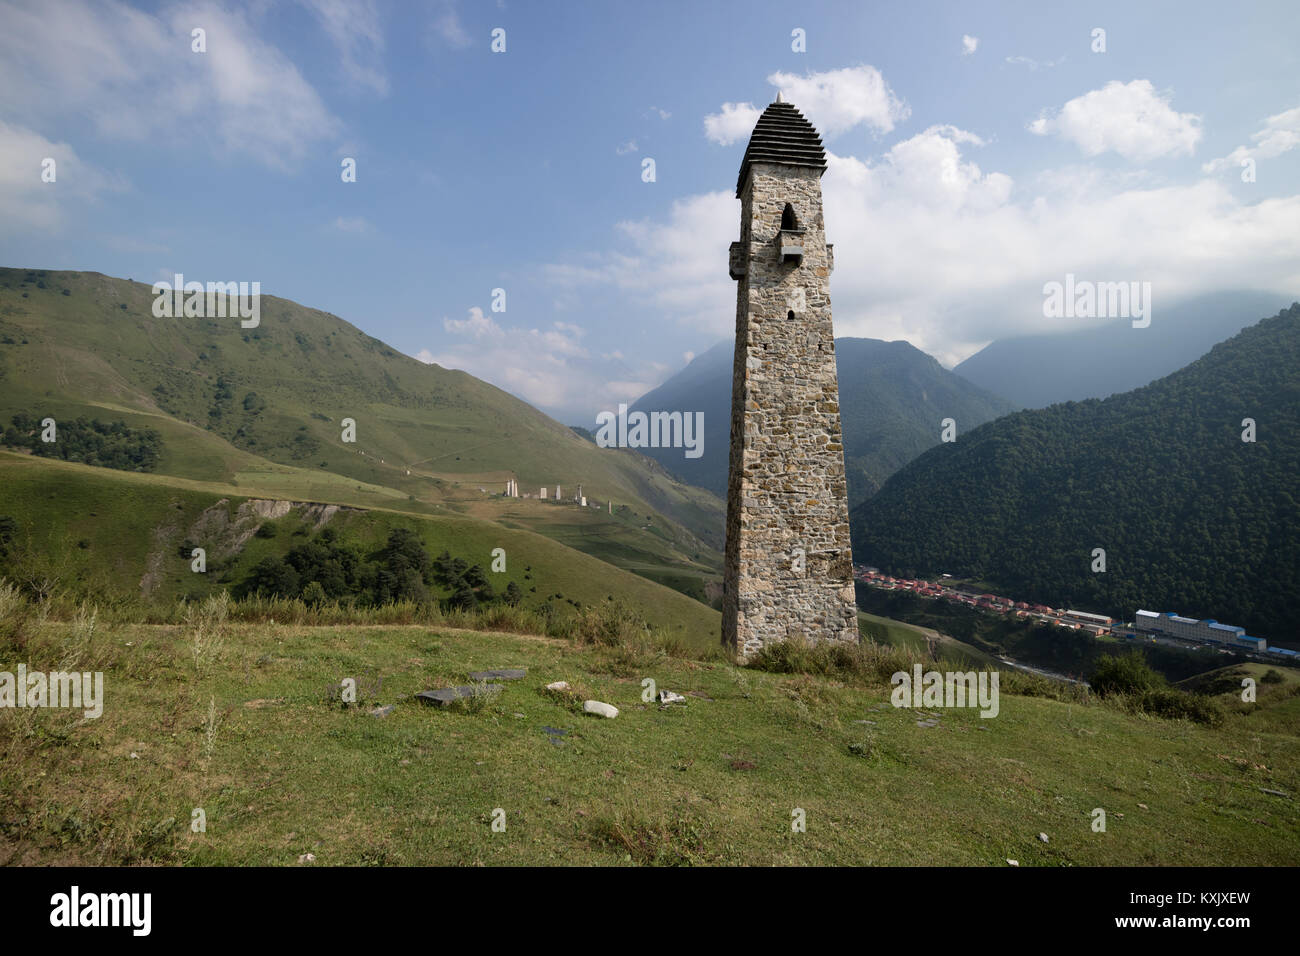 Military medieval tower ('combat', 'war' watchtower) of Vainakh architecture, Chechen mountains - Stock Image